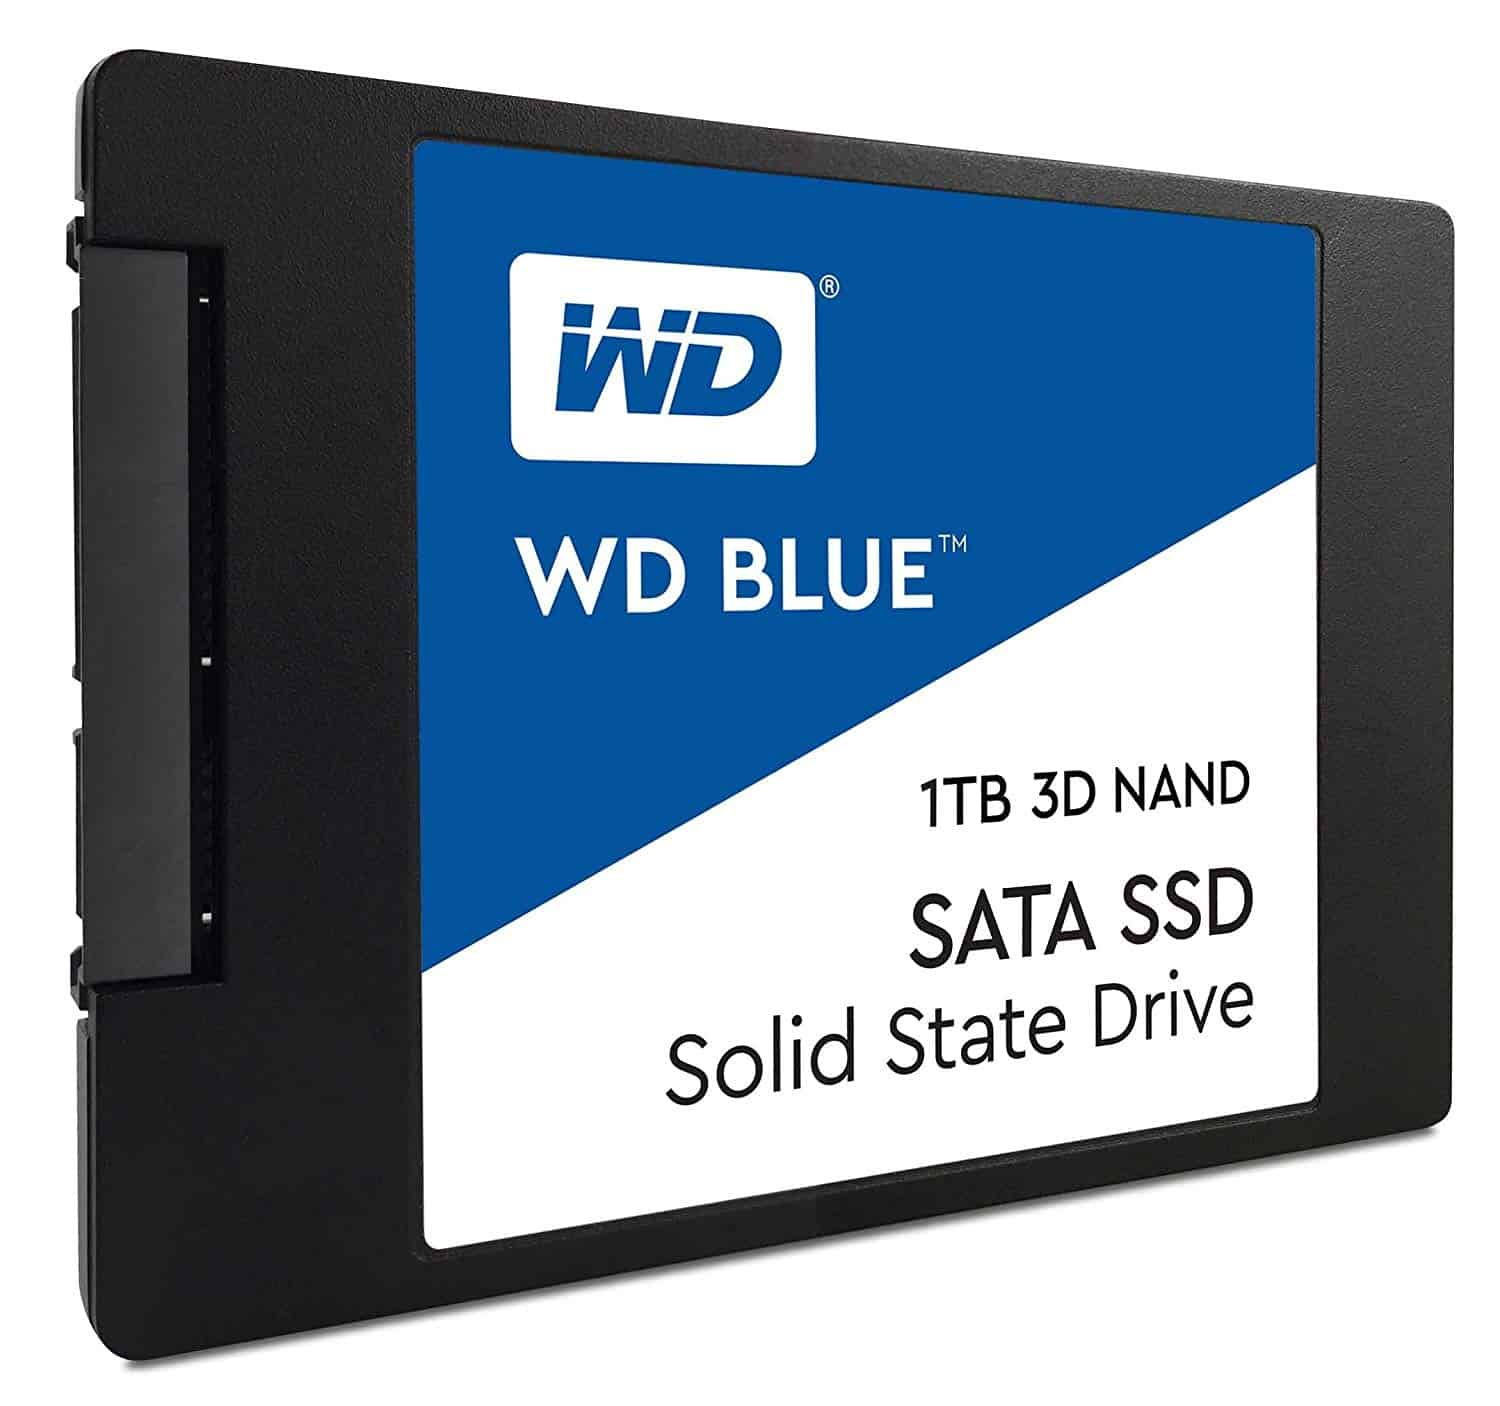 WD Blue Series SSD